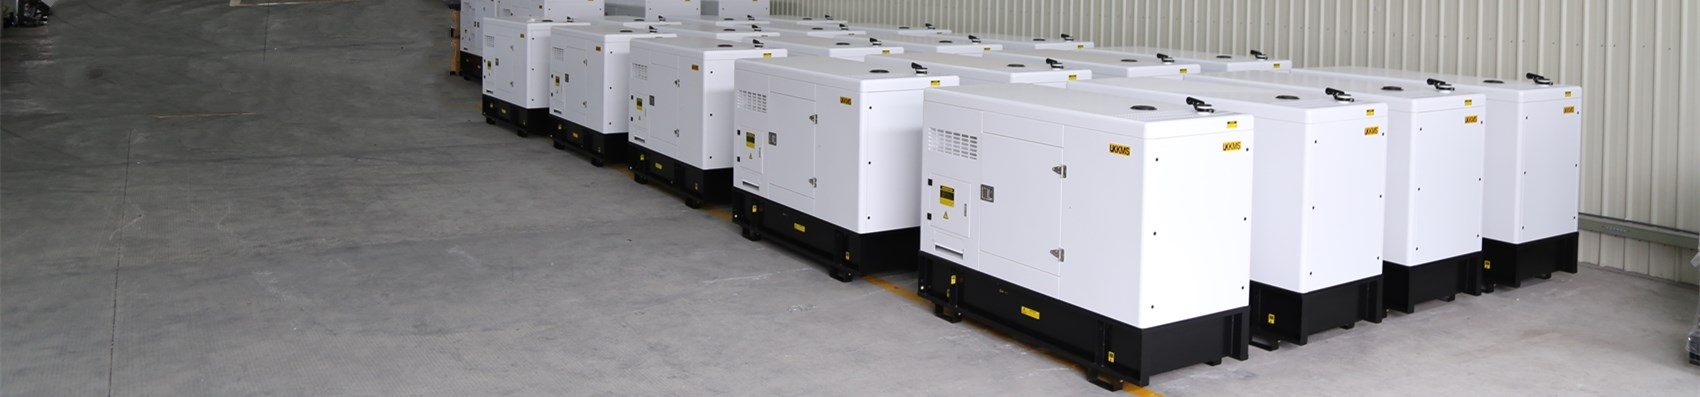 Professional Generator Supplier